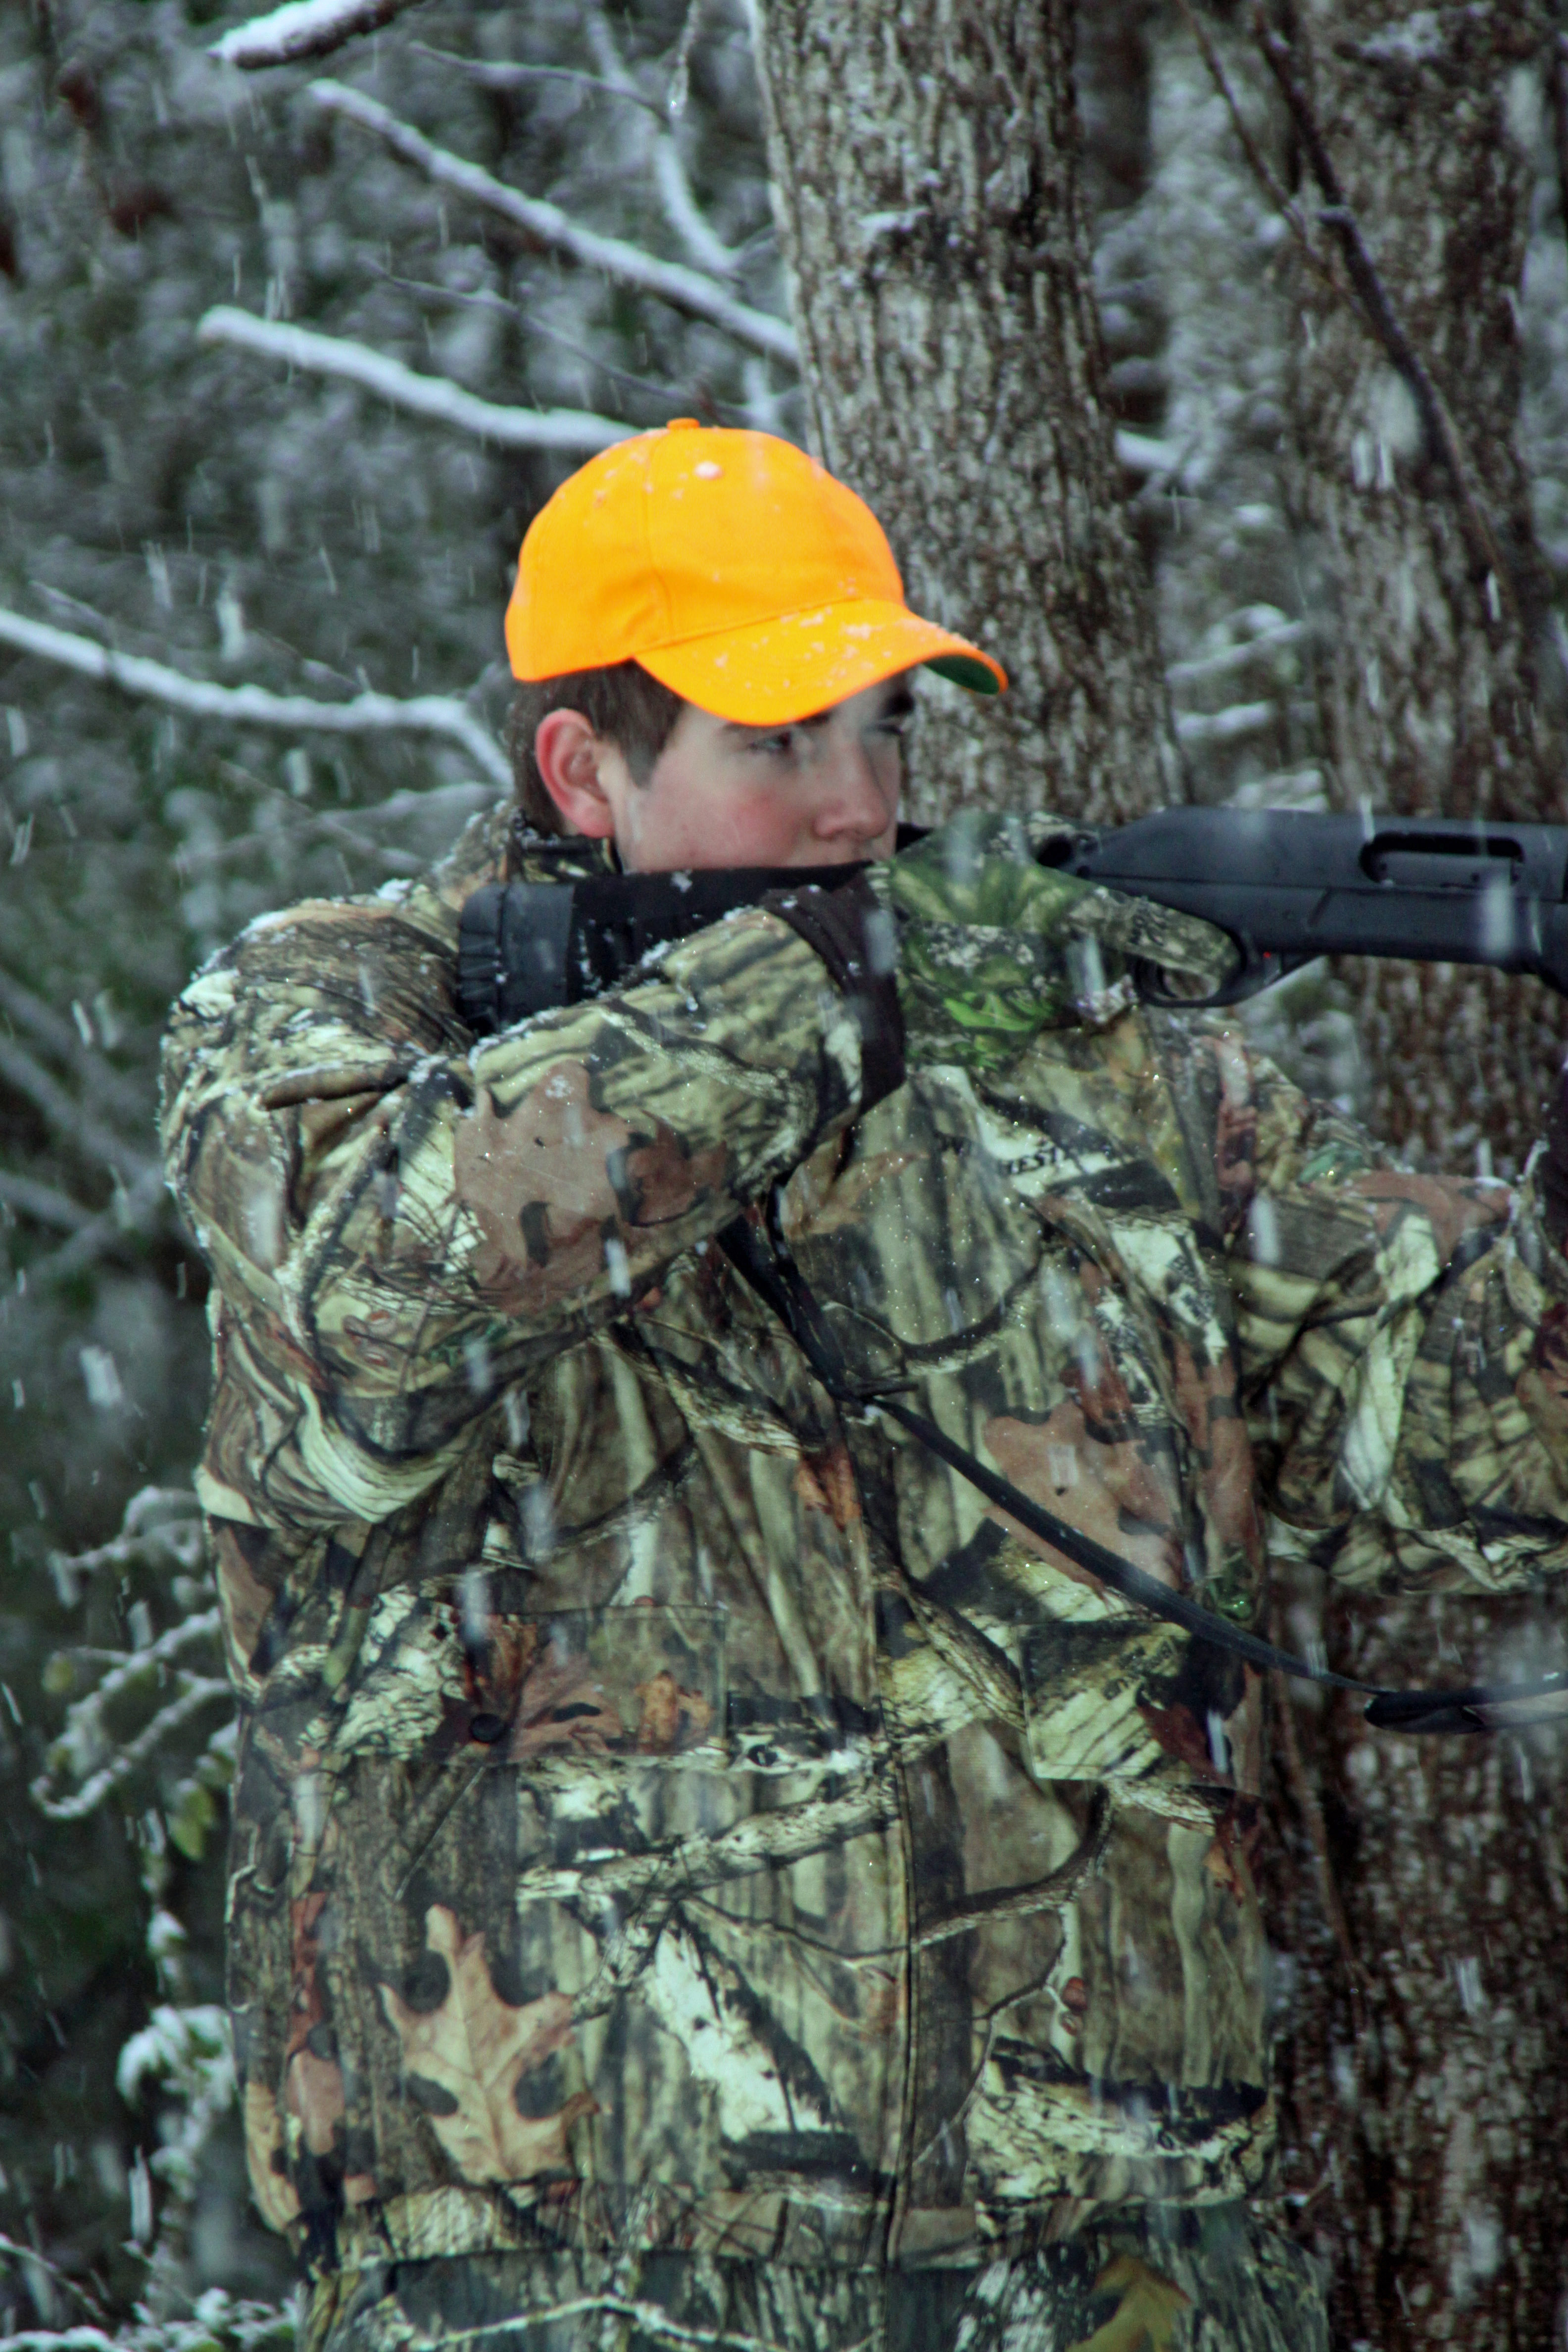 Avoid crowds and watch the weather to have success deer hunting late in the season.